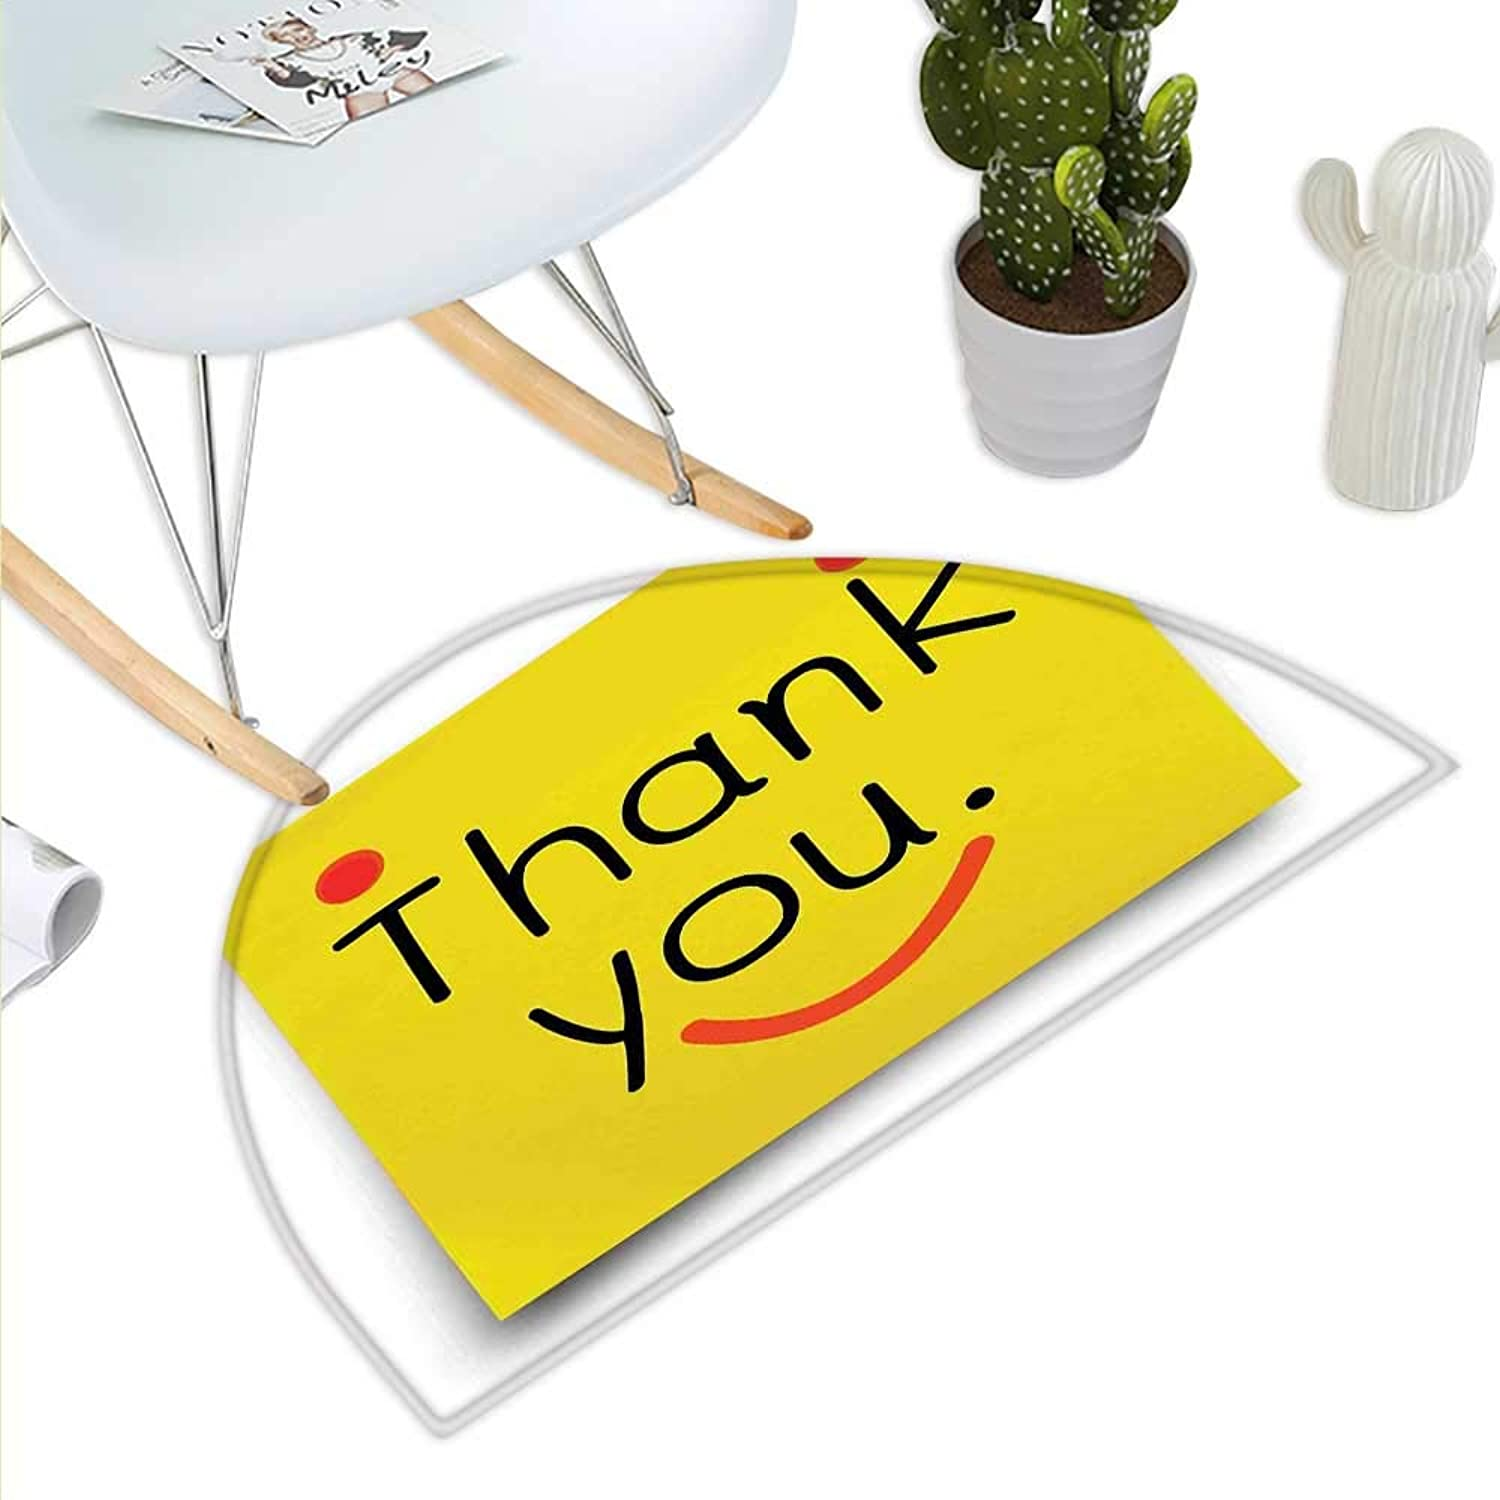 Funny Semicircle Doormat Thank You Emoji Icon On Notepaper Sticky Post It Yellow Smiley Face Print Halfmoon doormats H 43.3  xD 64.9  Yellow orange Black